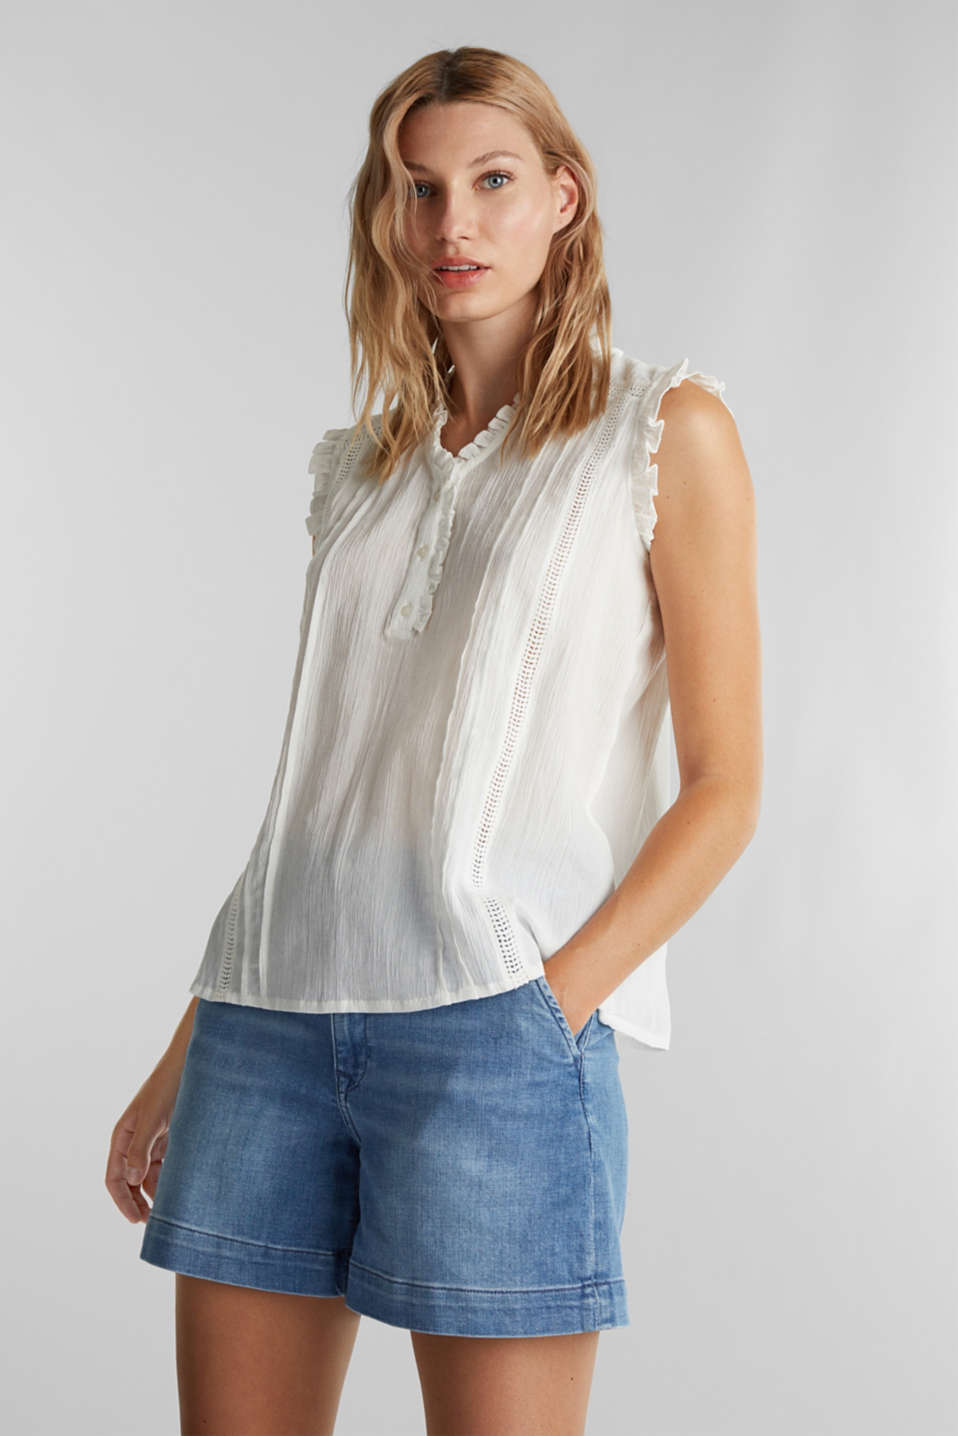 Esprit - Crinkle blouse top with broderie anglaise